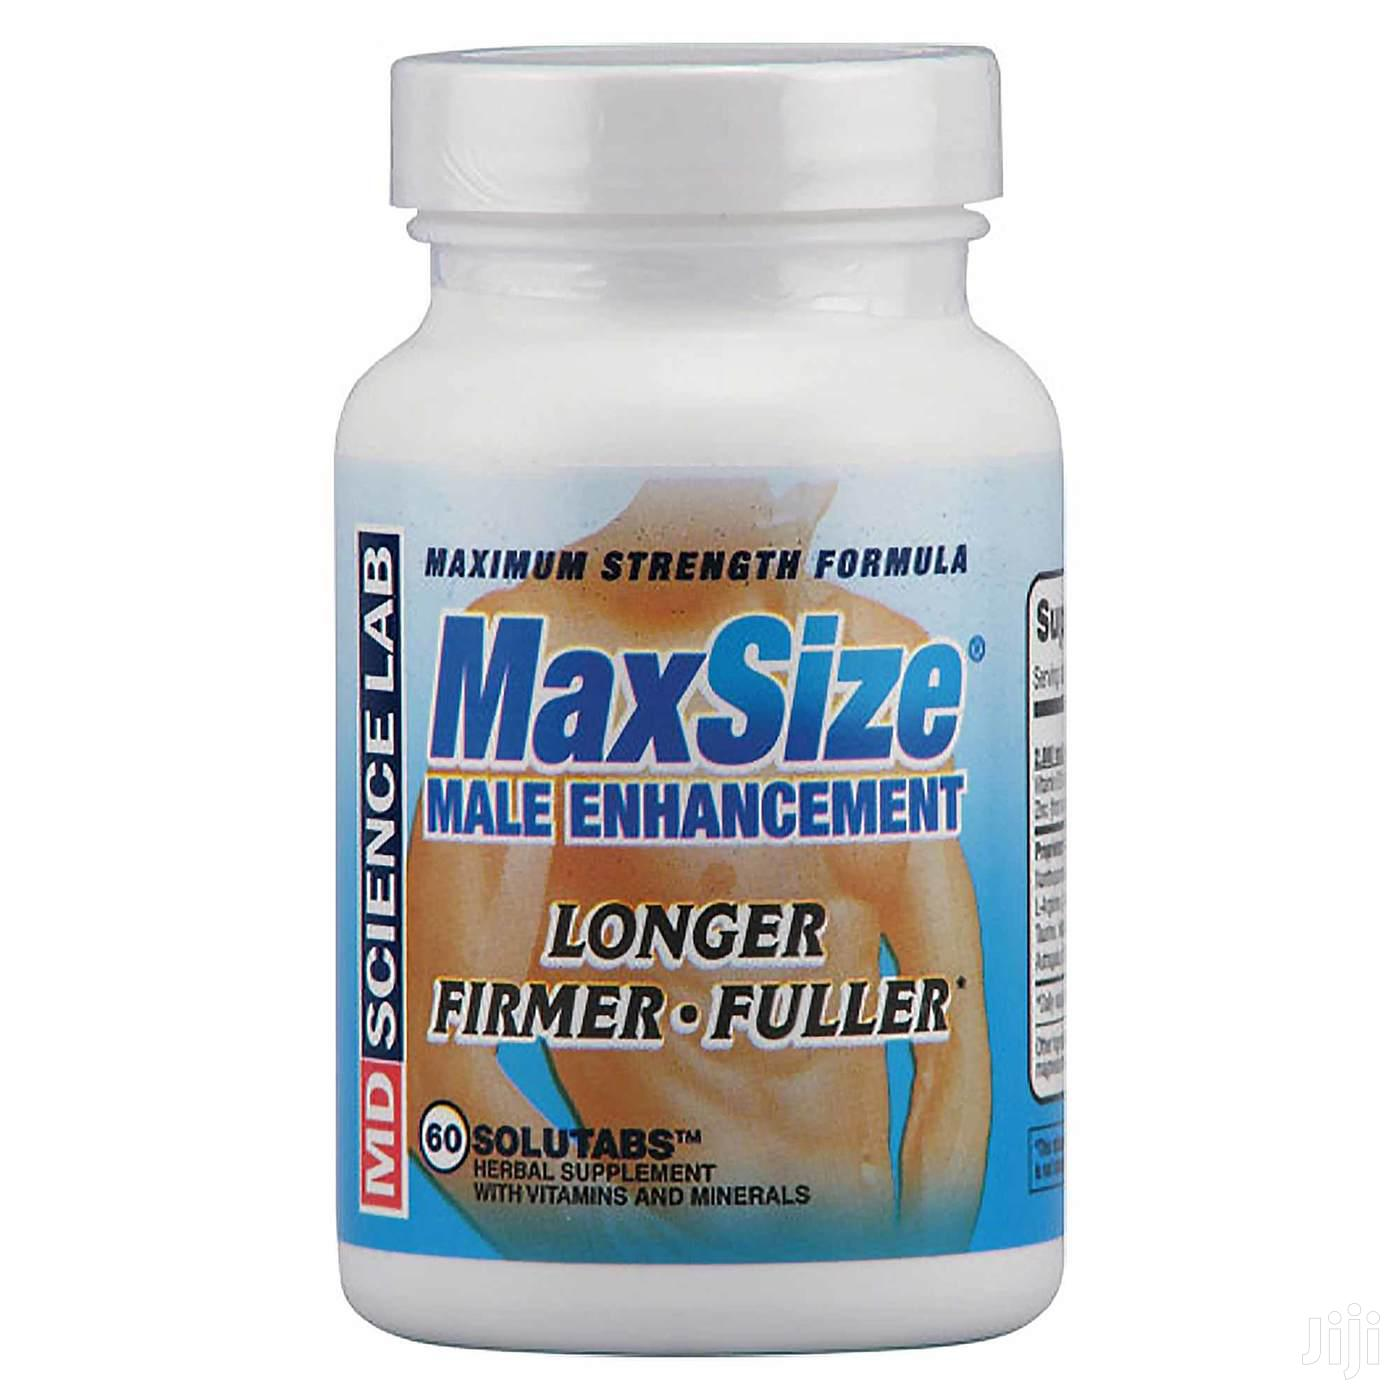 Max Size, Male Enhancement Formula Maximum-strength - 60 Tablets